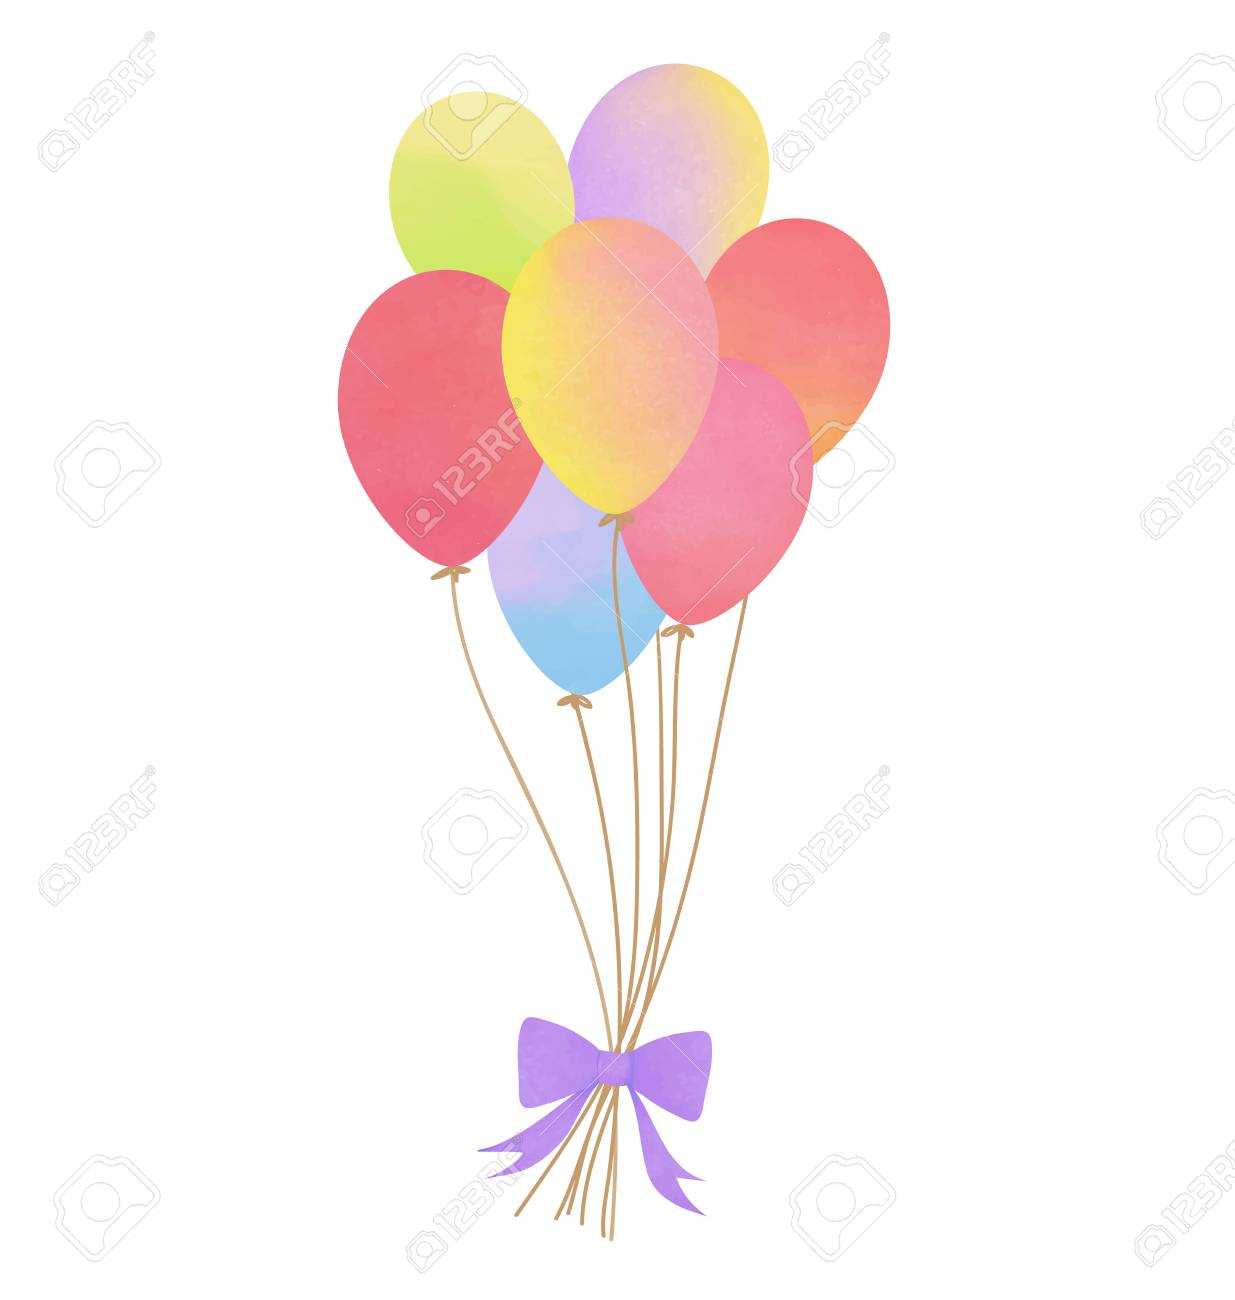 Cute balloon clipart picture free stock Cute Balloon Cliparts - Making-The-Web.com picture free stock